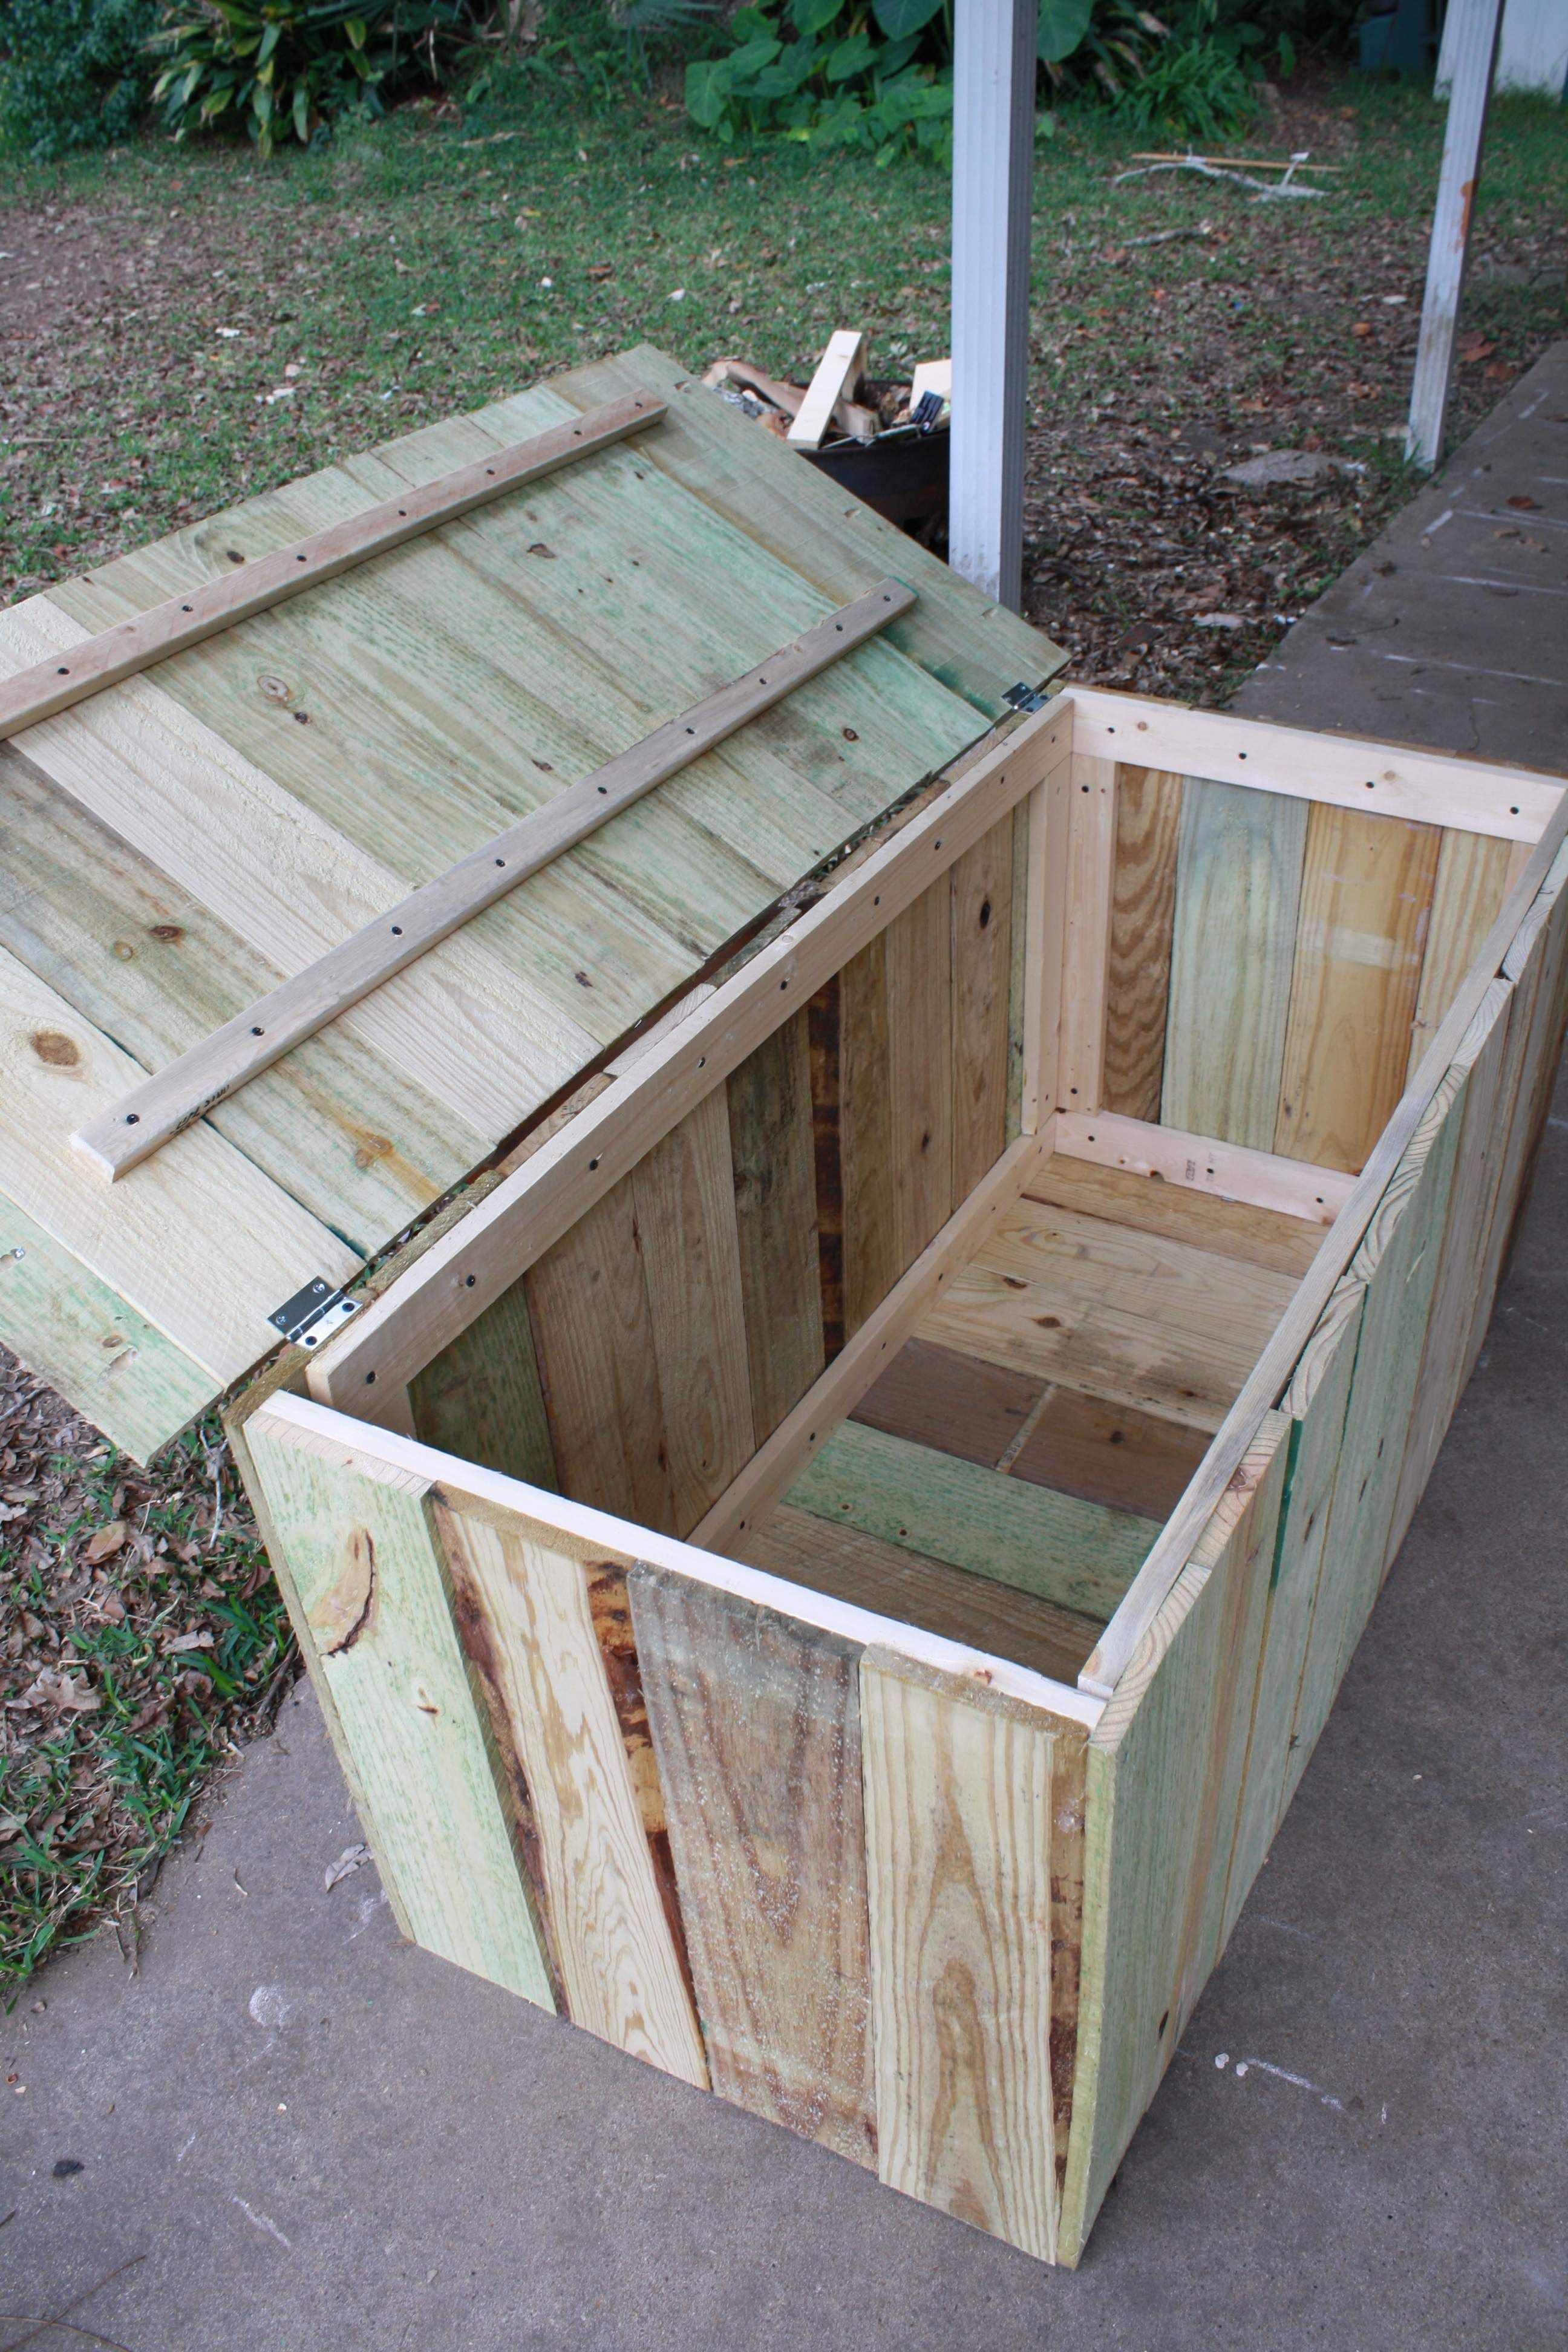 Nice Storage For Pool. Easy To Build, I Think The Bottom Would Have More Holes